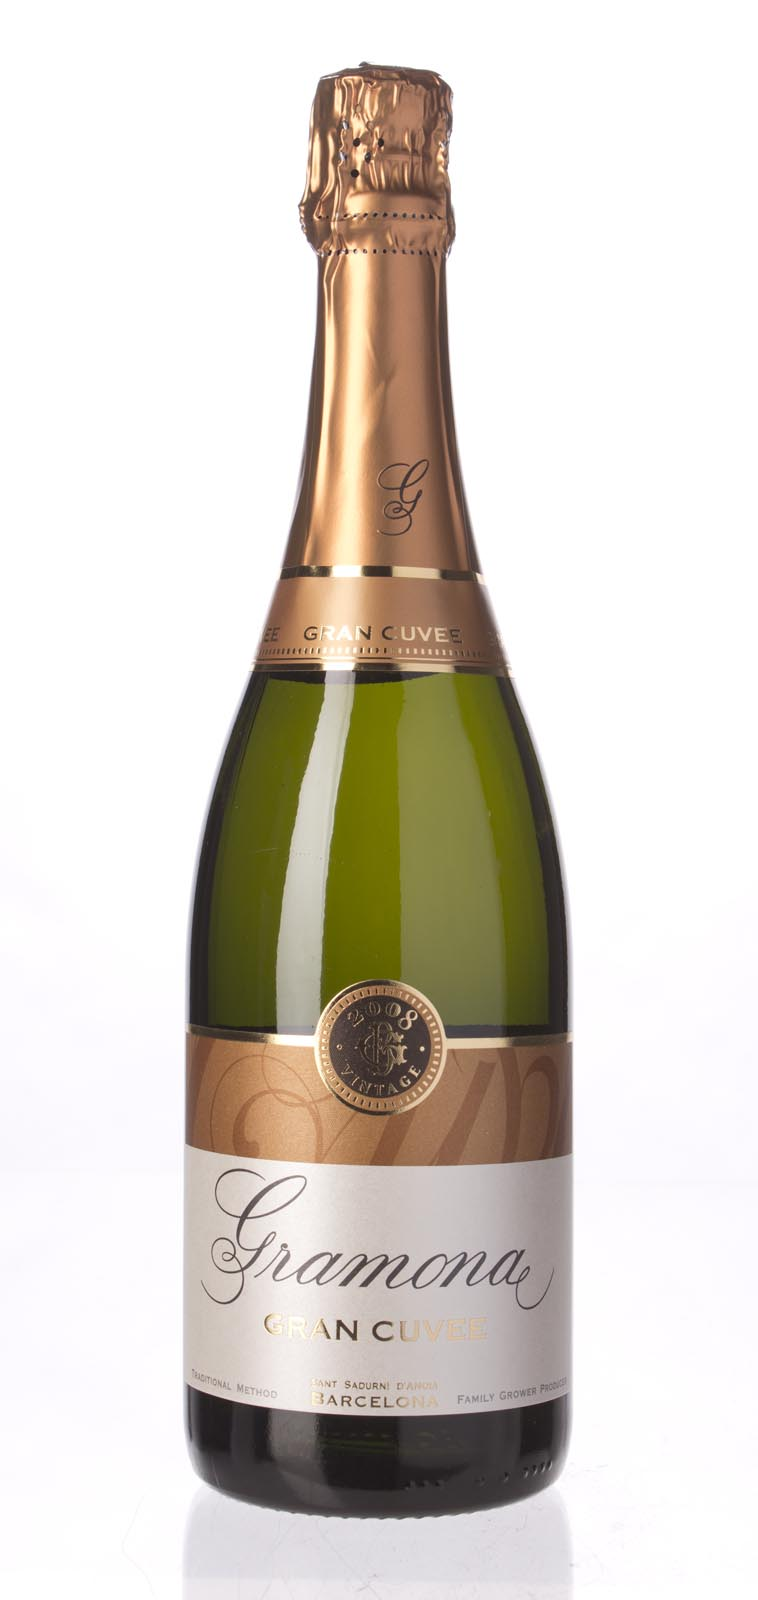 Gramona Cava Grand Cuvee 2008, 750ml (WA90) from The BPW - Merchants of rare and fine wines.